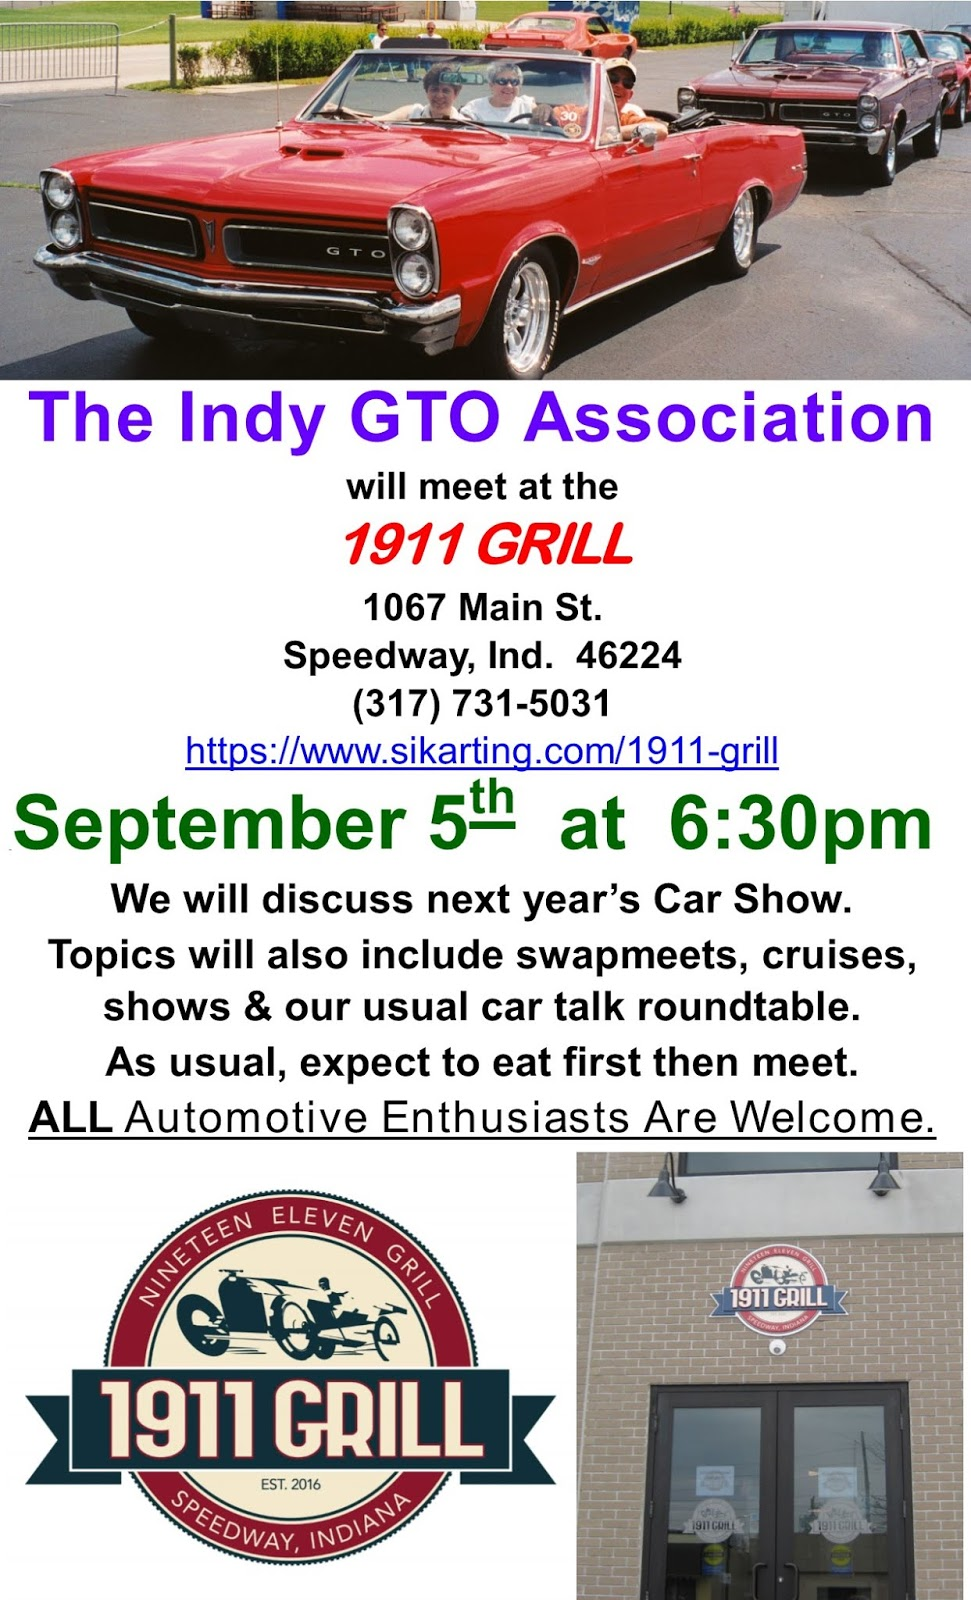 Indy GTO Association - Carmel indiana car show